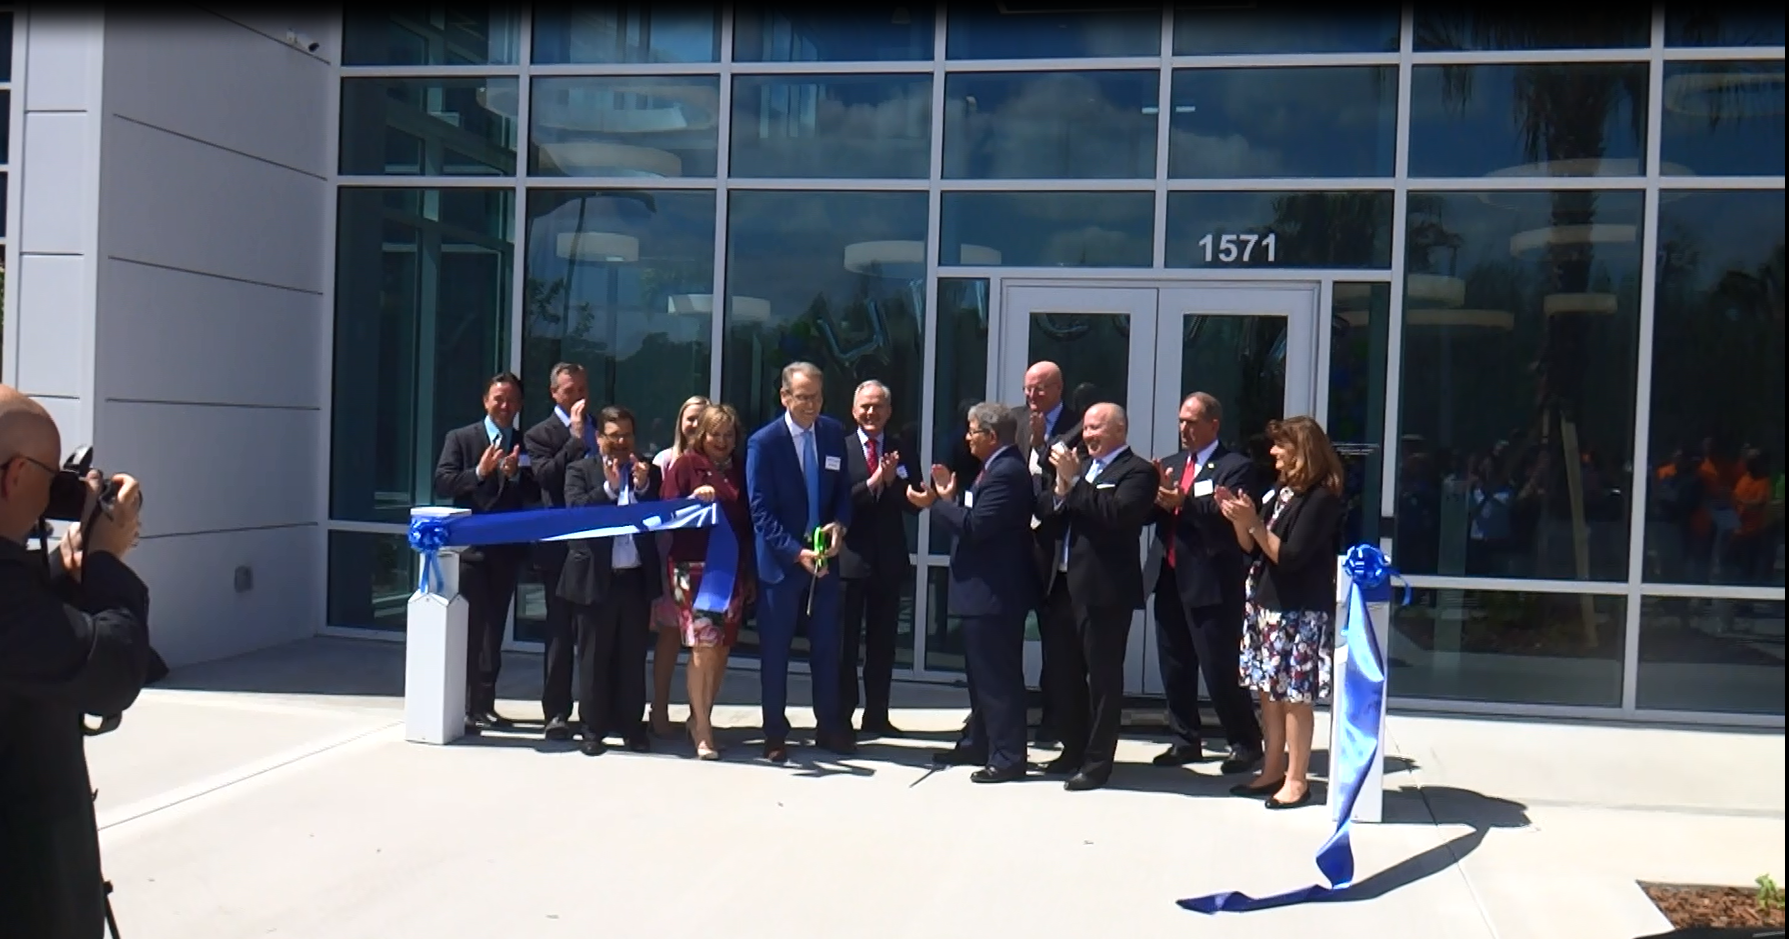 Group of people cutting a blue ribbon in front of Mettler Toledo